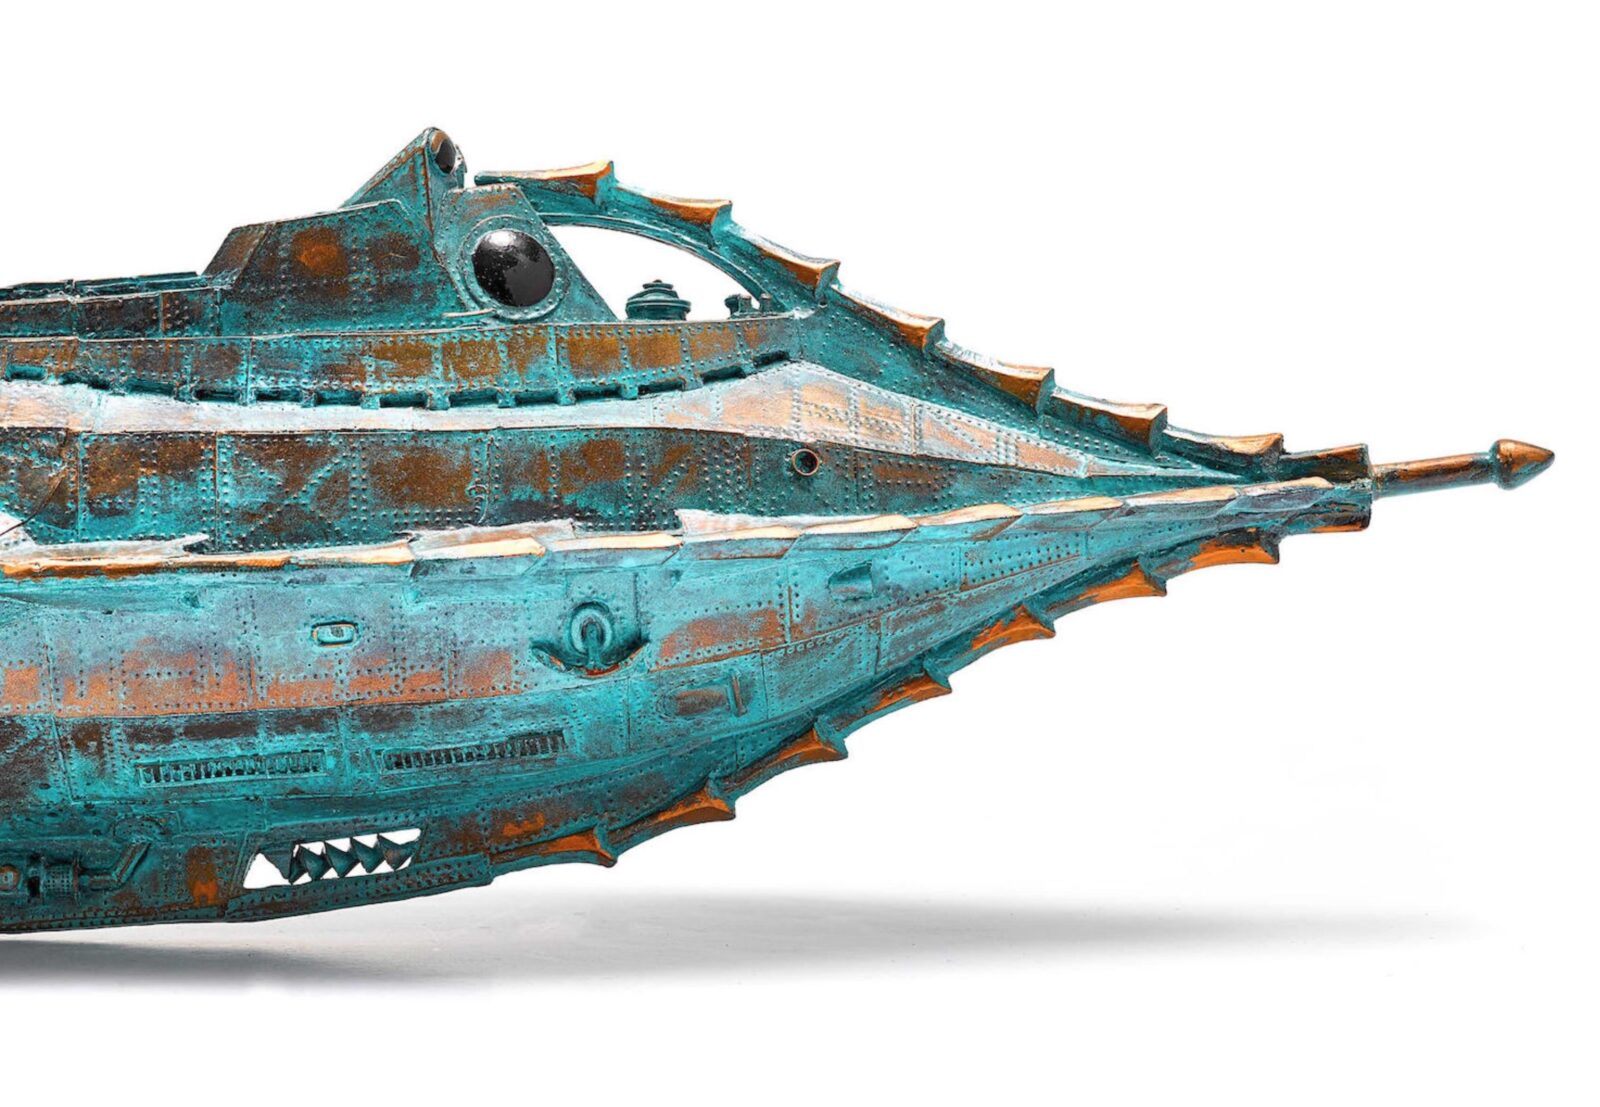 nautilus submarine 20000 leagues under the sea